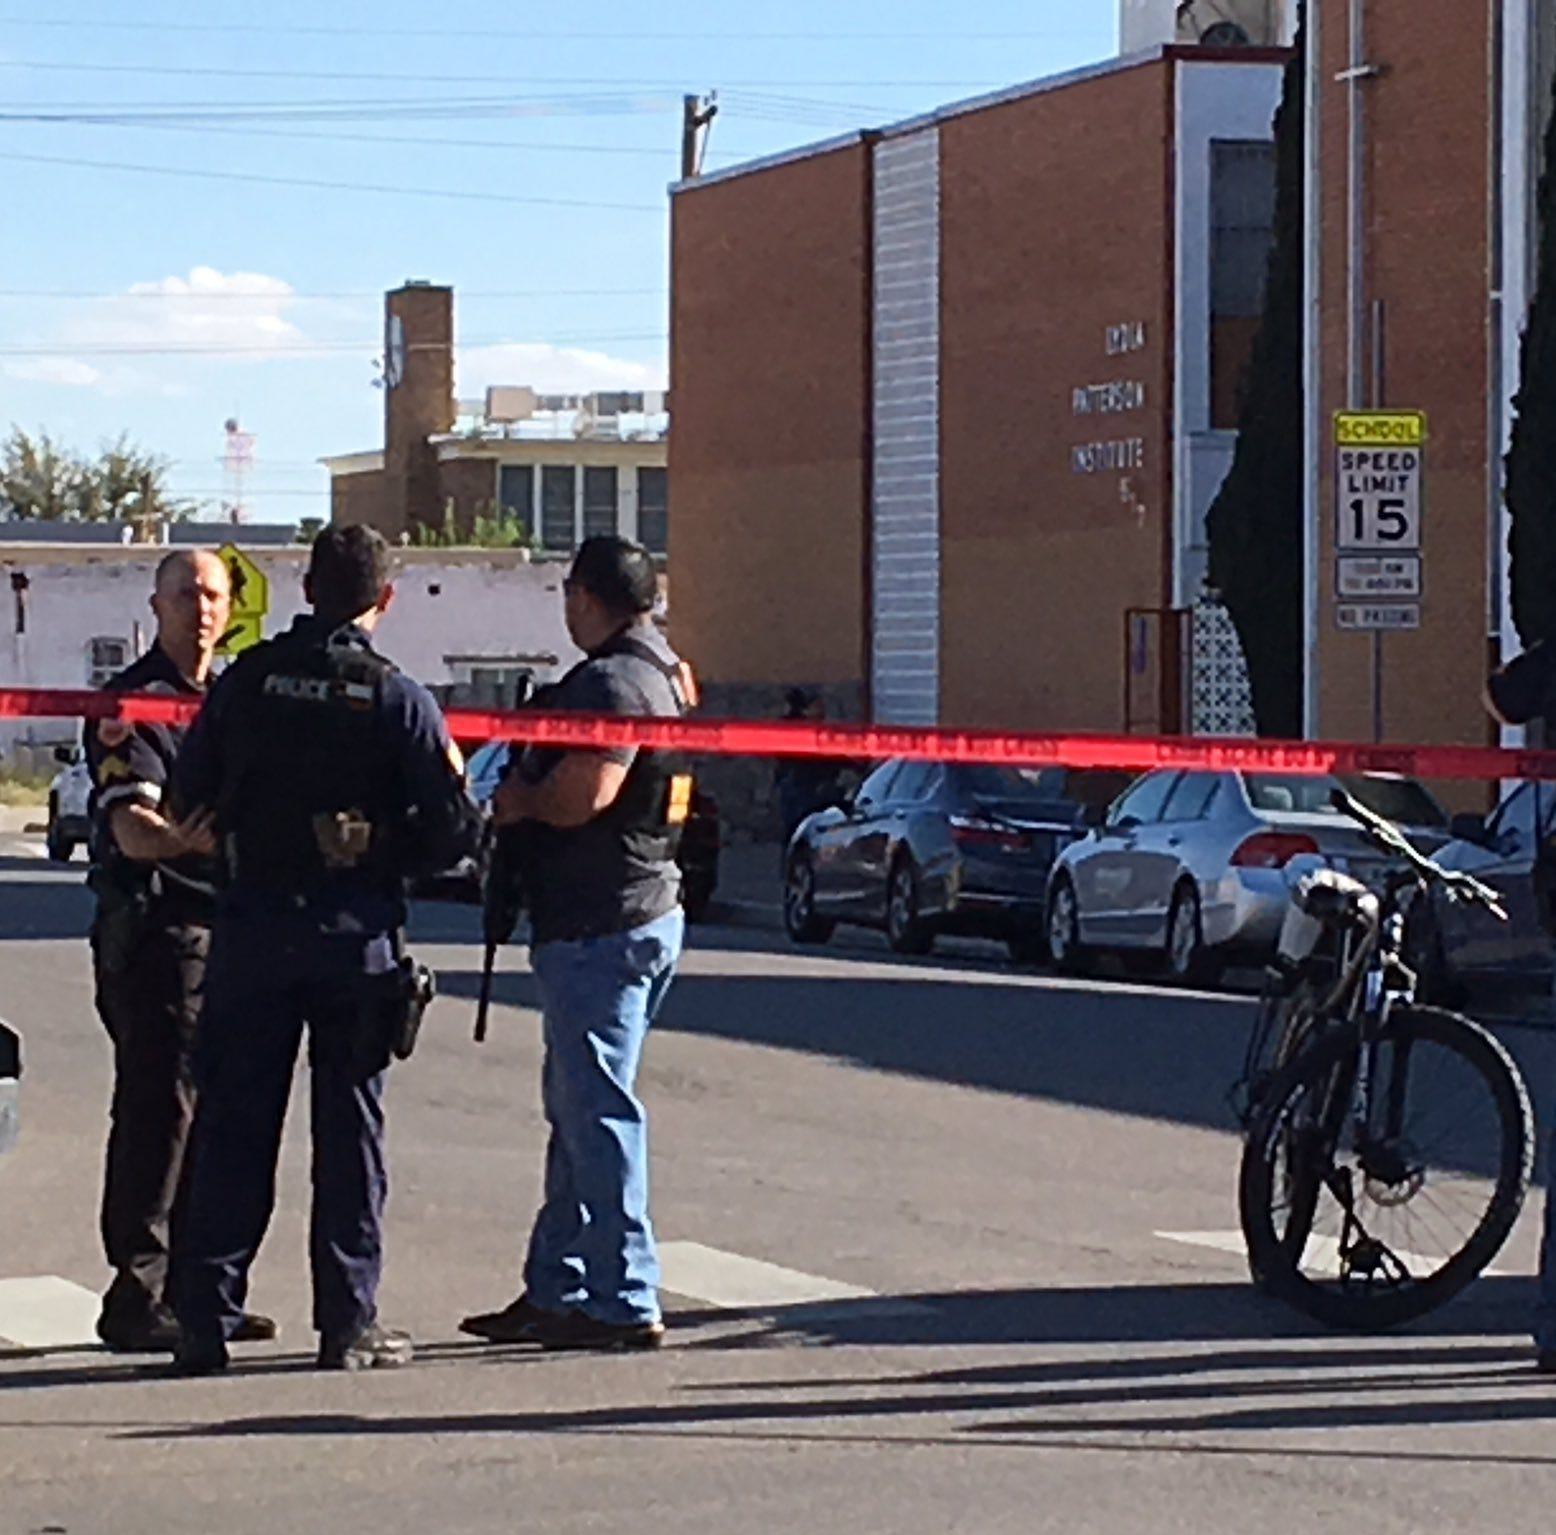 Shooting in El Paso near Mexican Consulate leads to arrest, school lockdown